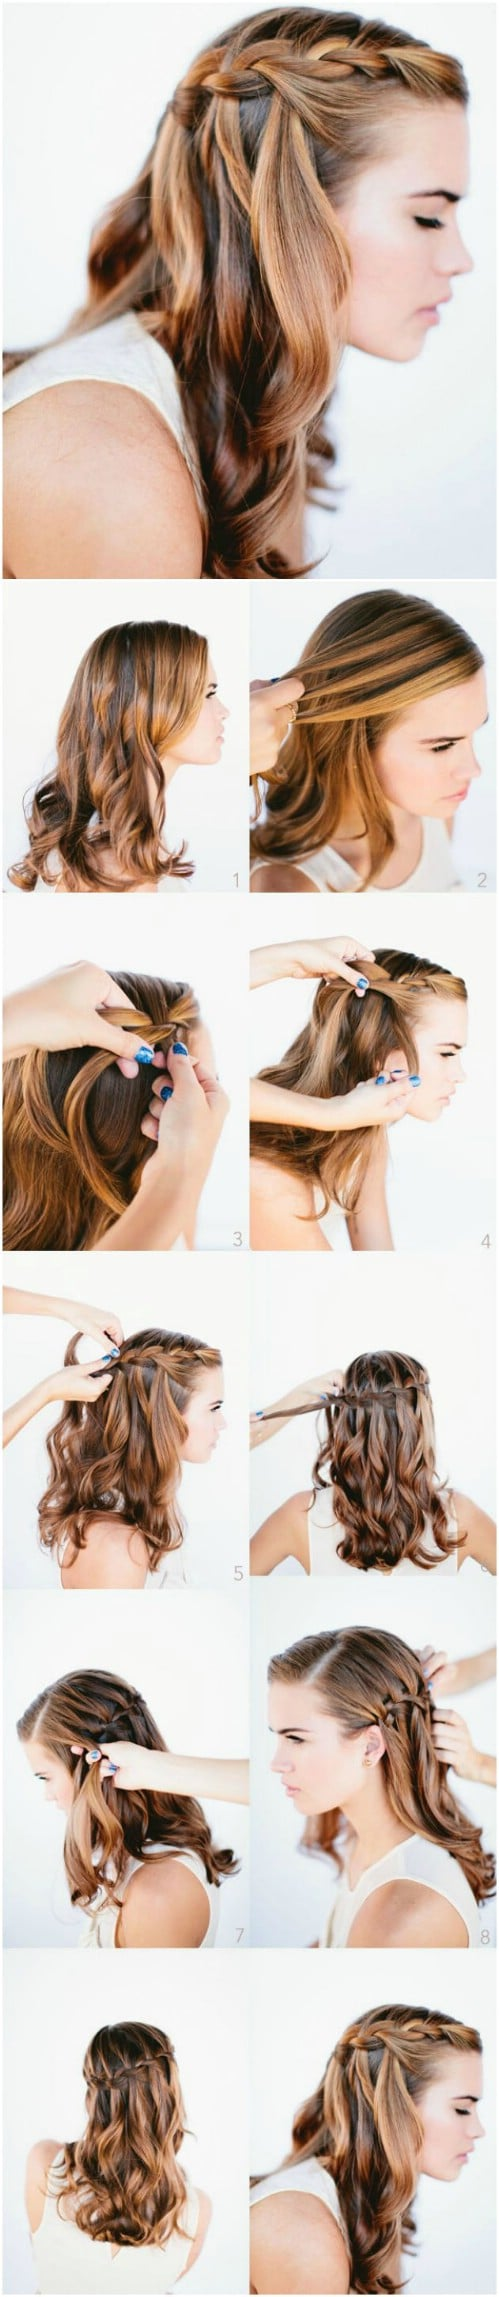 17 Wonderful Waterfall Braid Tutorials For Your Luscious